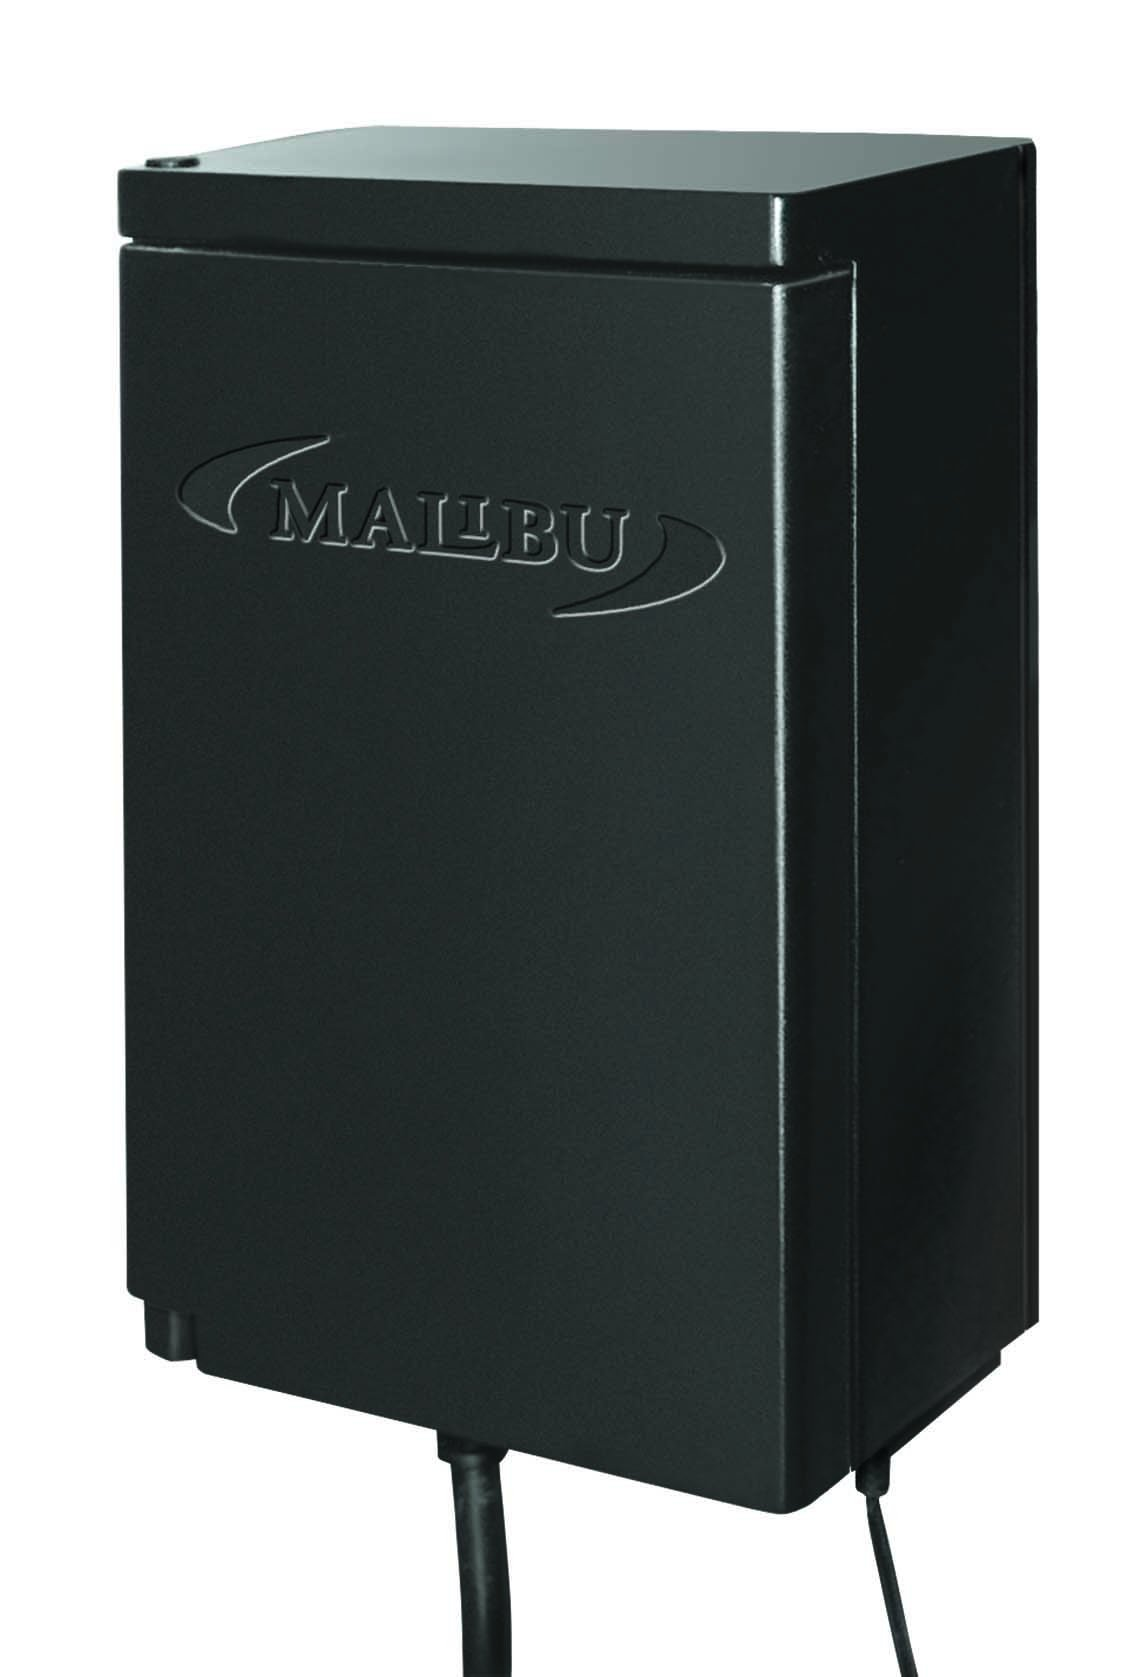 Malibu 45 Watt Power Pack with Sensor and Weather Shield for Low Voltage Landscape Lighting and Spotlight Outdoor Transformer 120V Input 12V Output 8100-9045-01